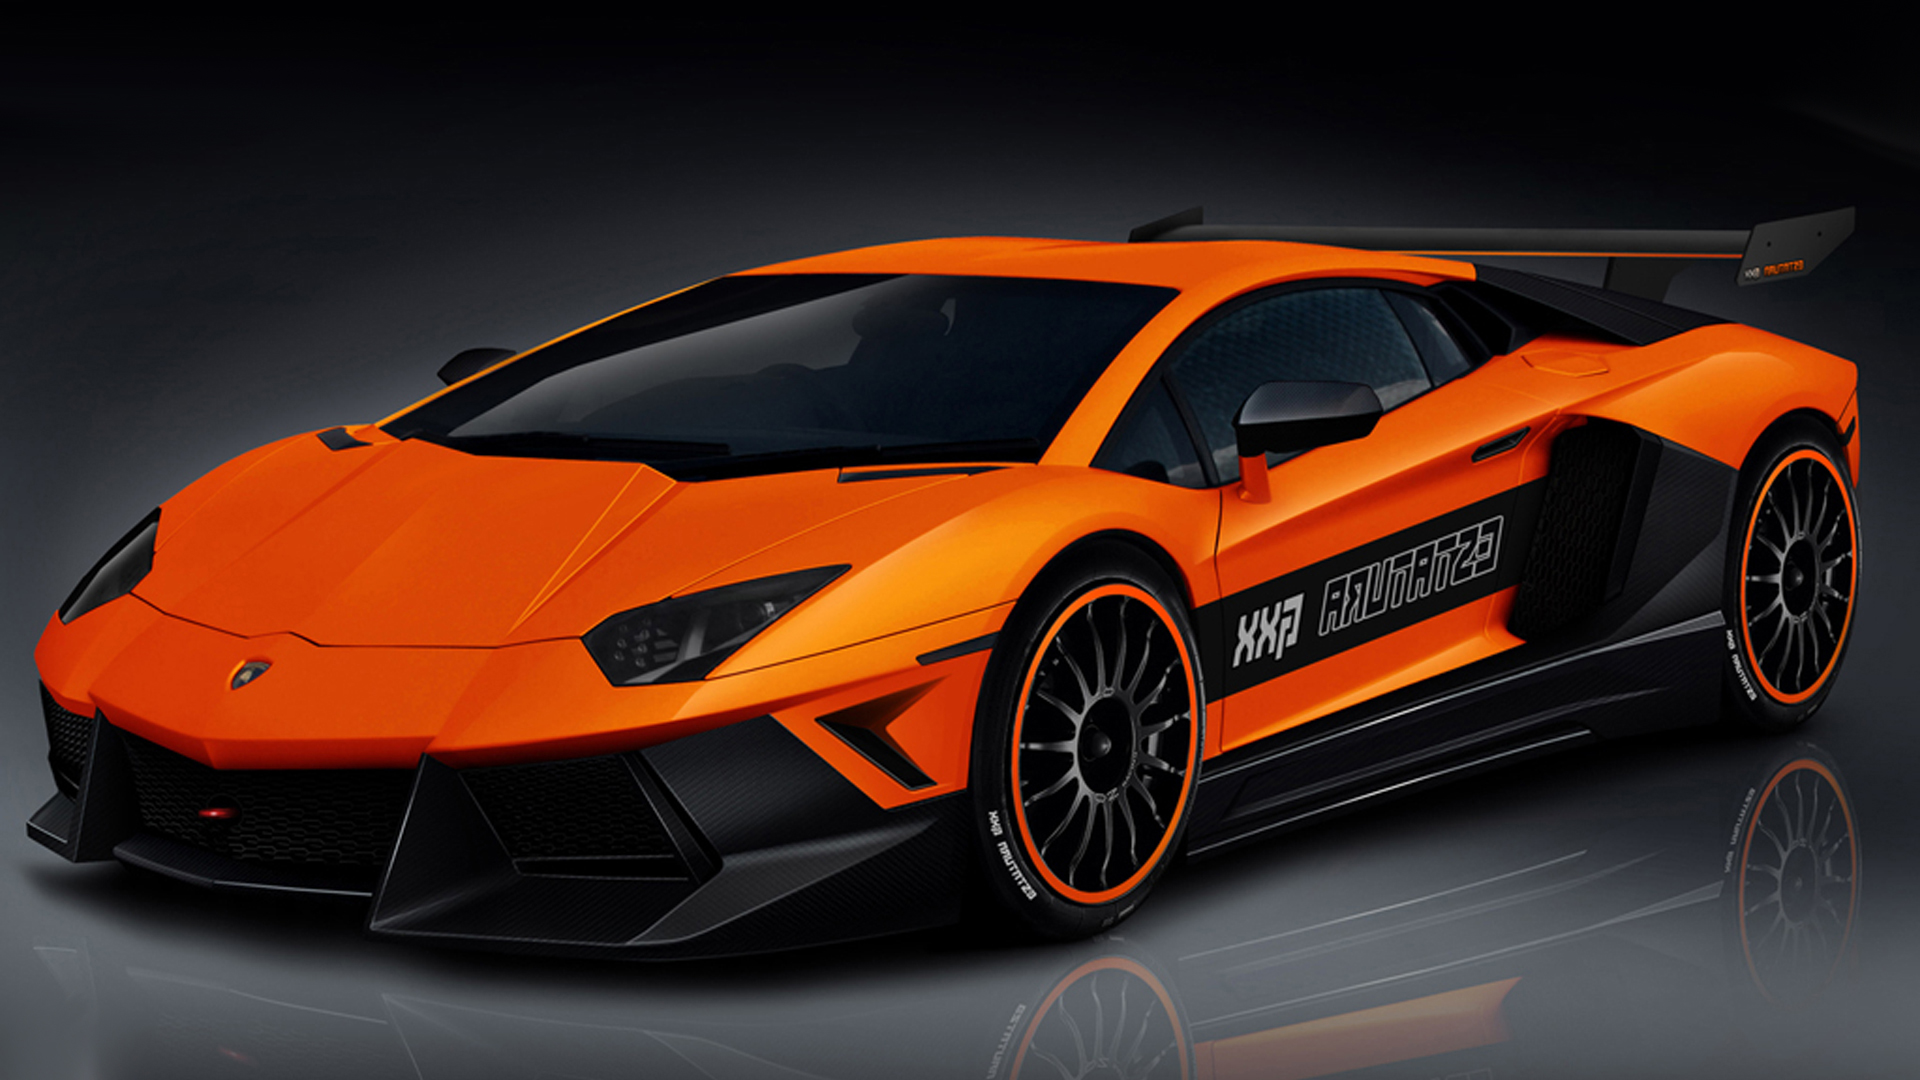 lamborghini aventador fiche technique prix performances. Black Bedroom Furniture Sets. Home Design Ideas